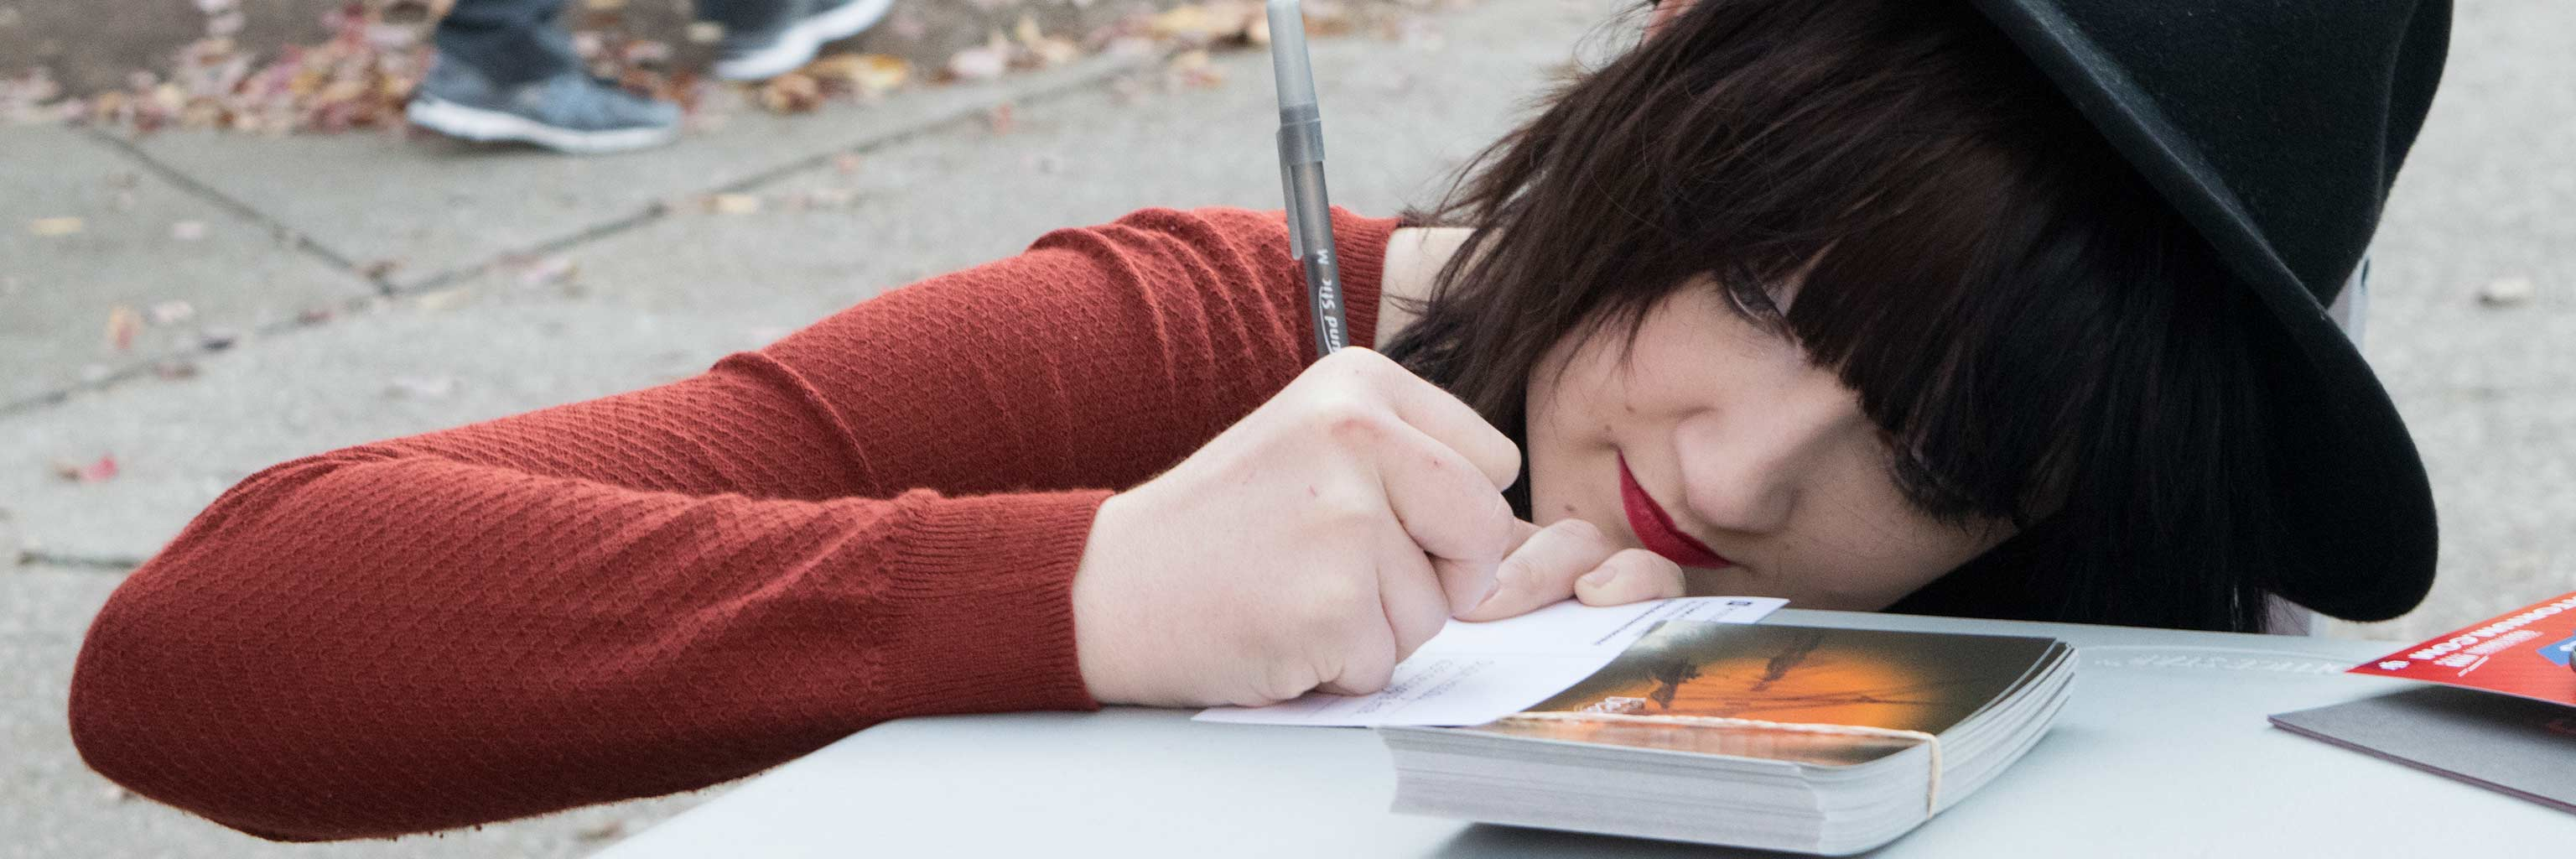 Girl writing on a piece of paper